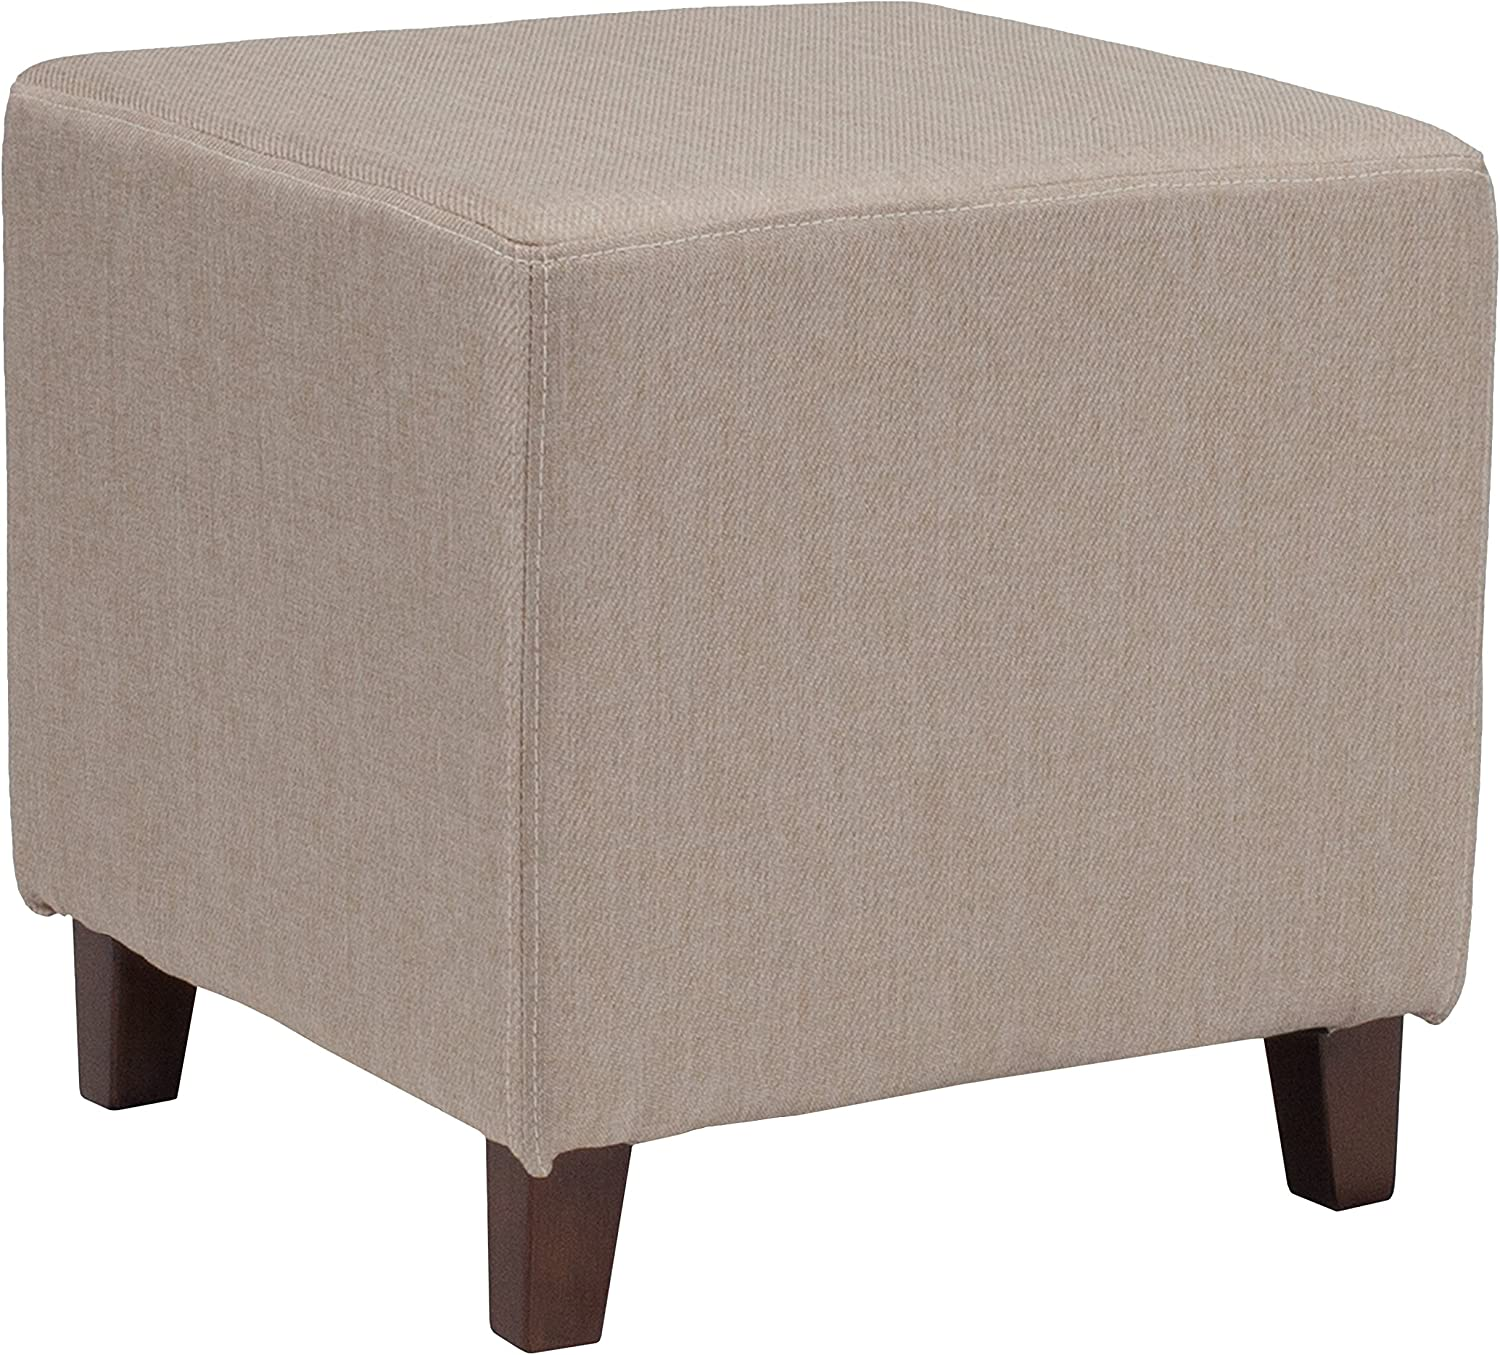 Flash Furniture Ascalon Upholstered Ottoman Pouf in Beige Fabric